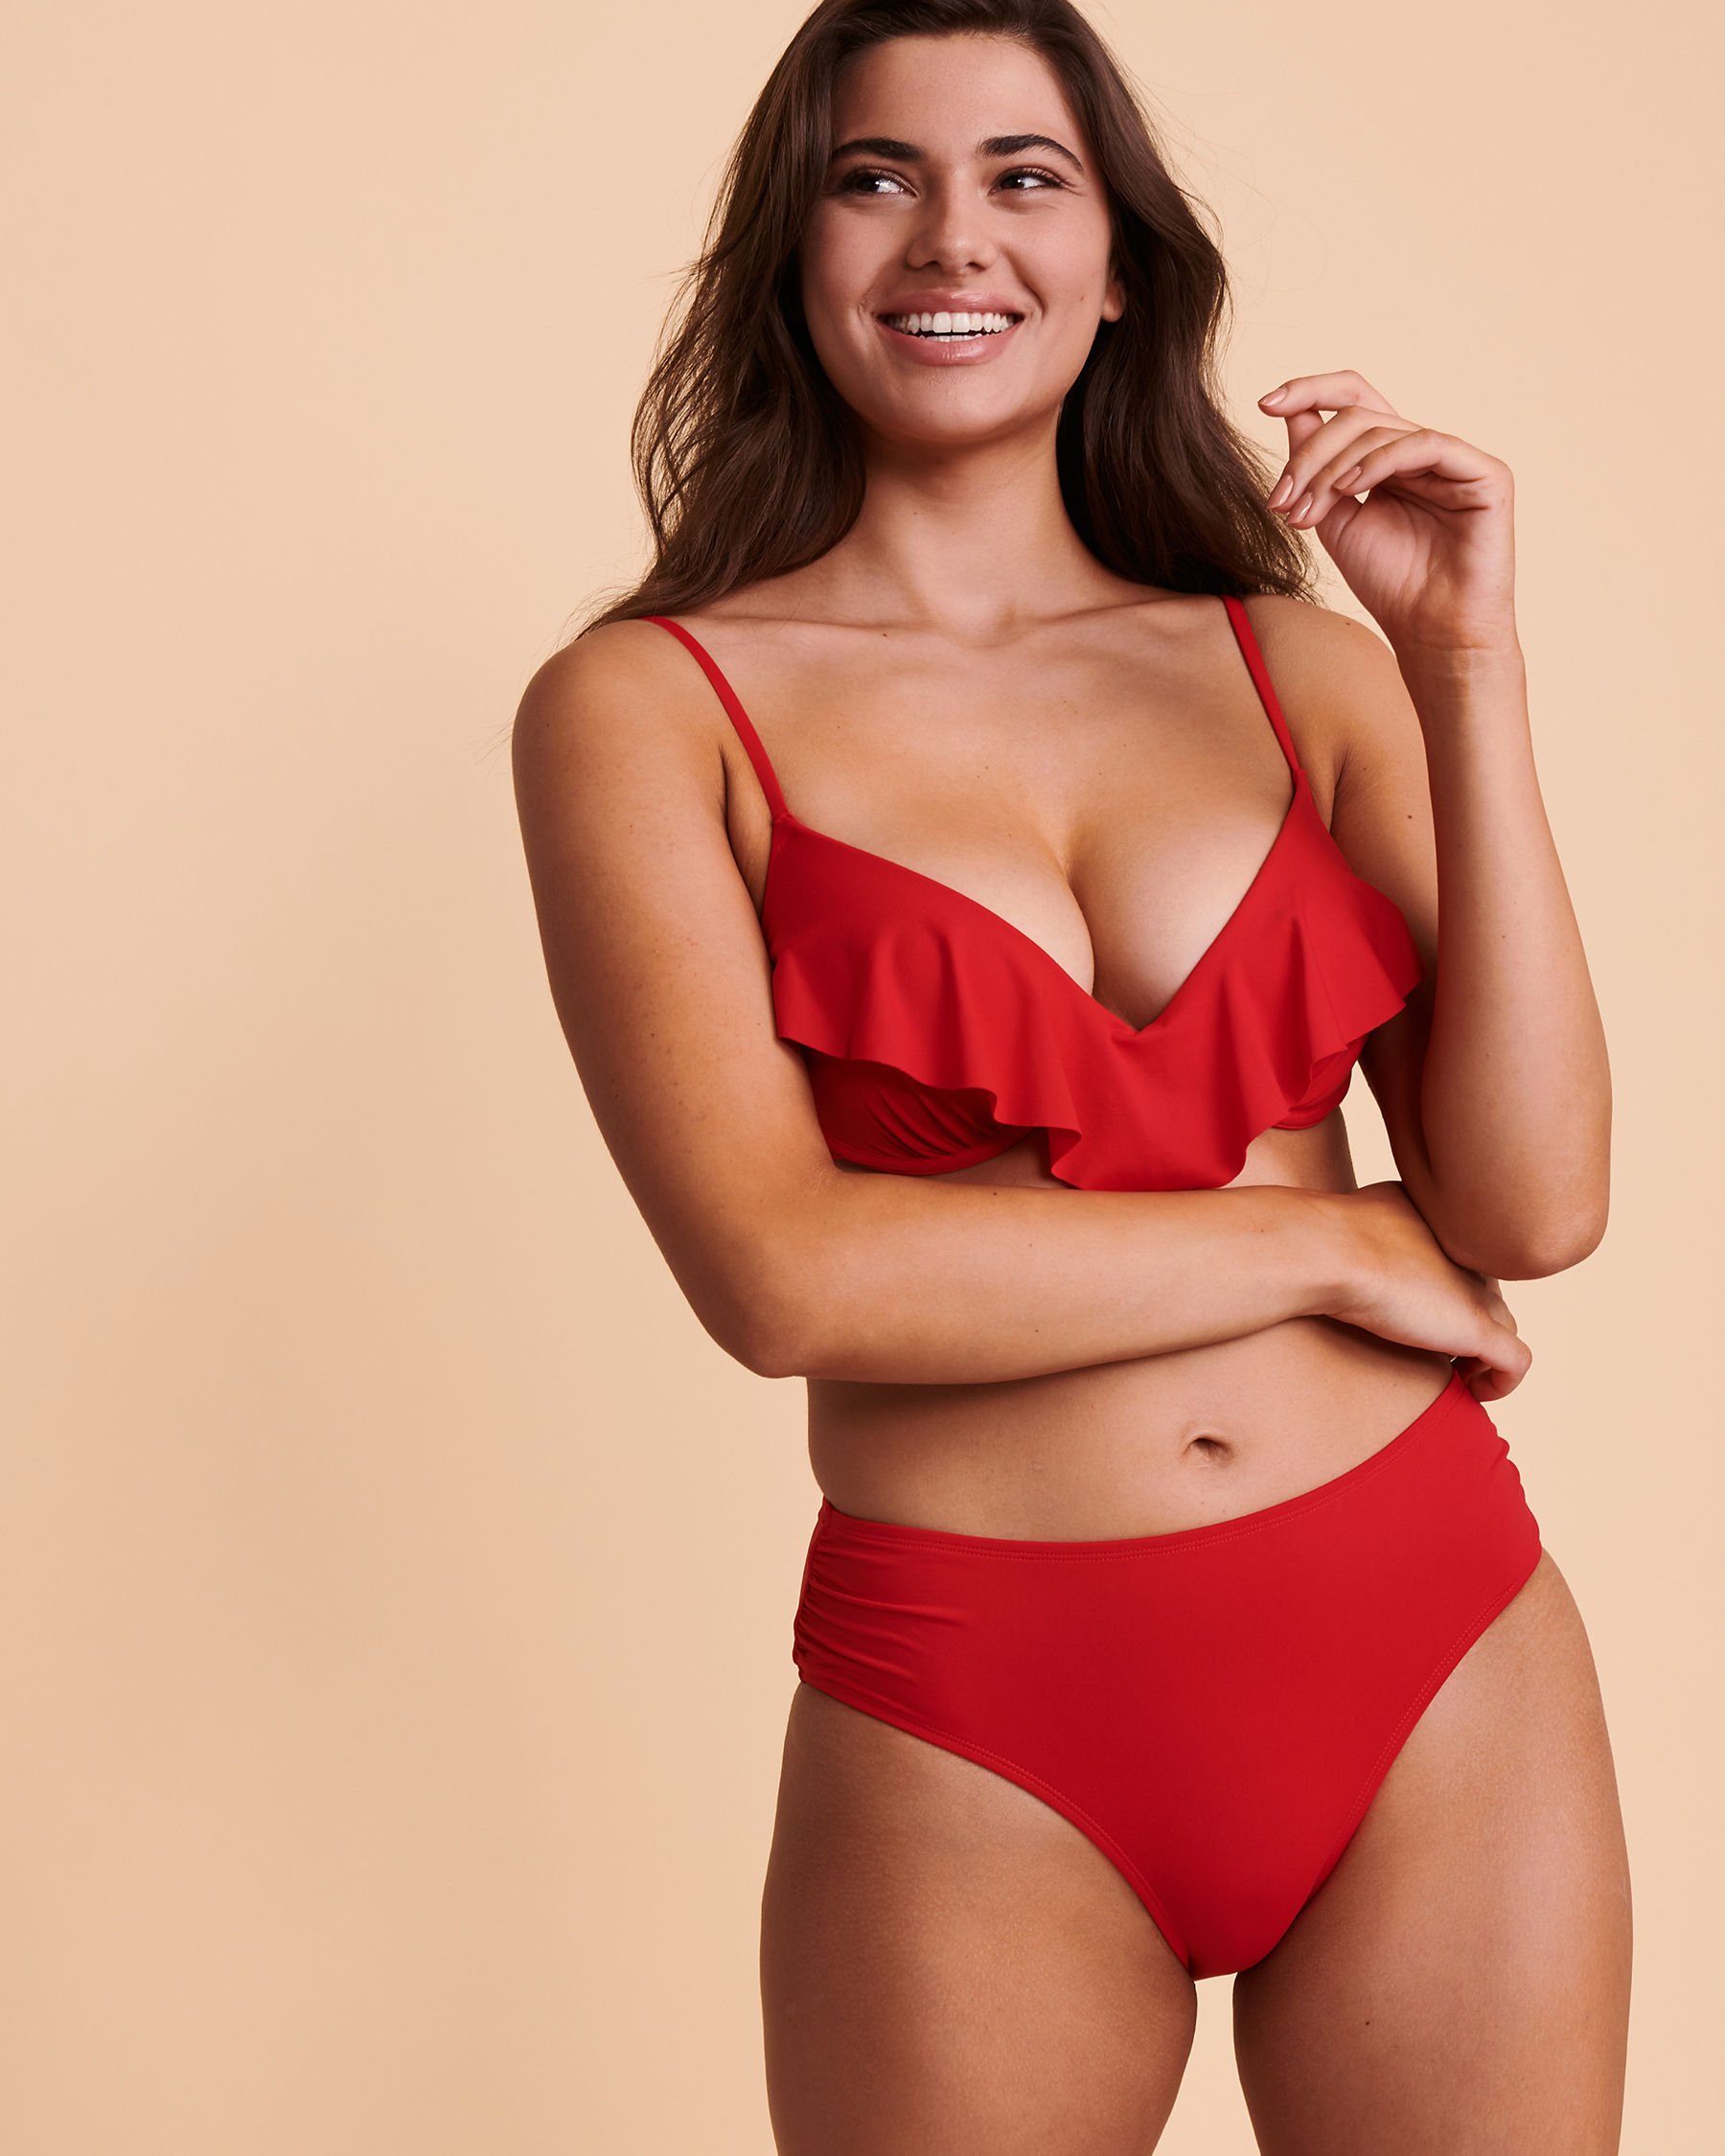 TURQUOISE COUTURE SOLID Ruffle Push-up Bikini Top Red 01100007 - View1